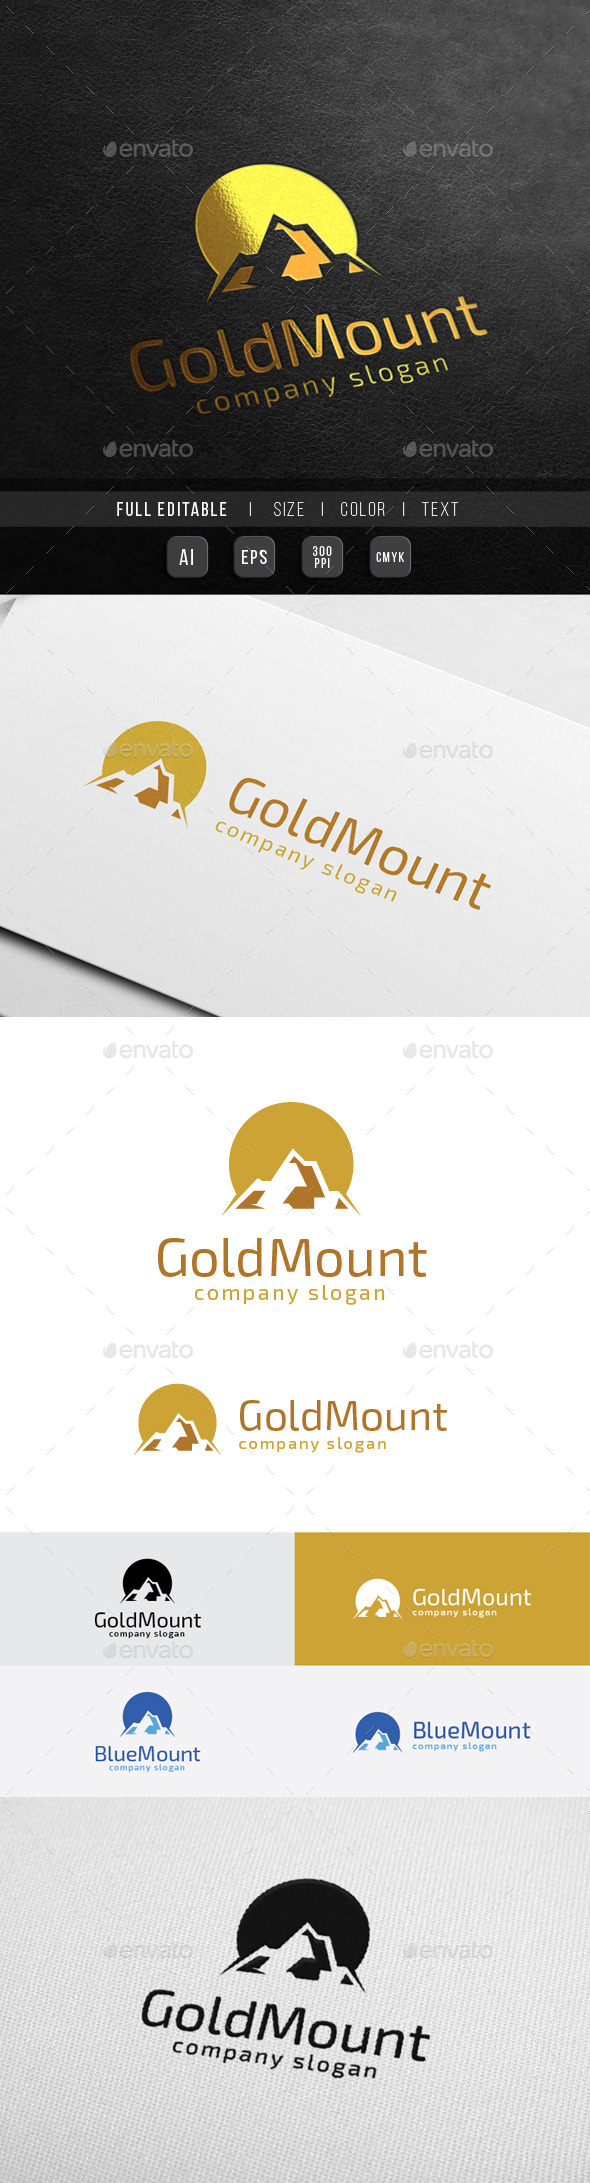 Golden Mountain - Finance Marketing